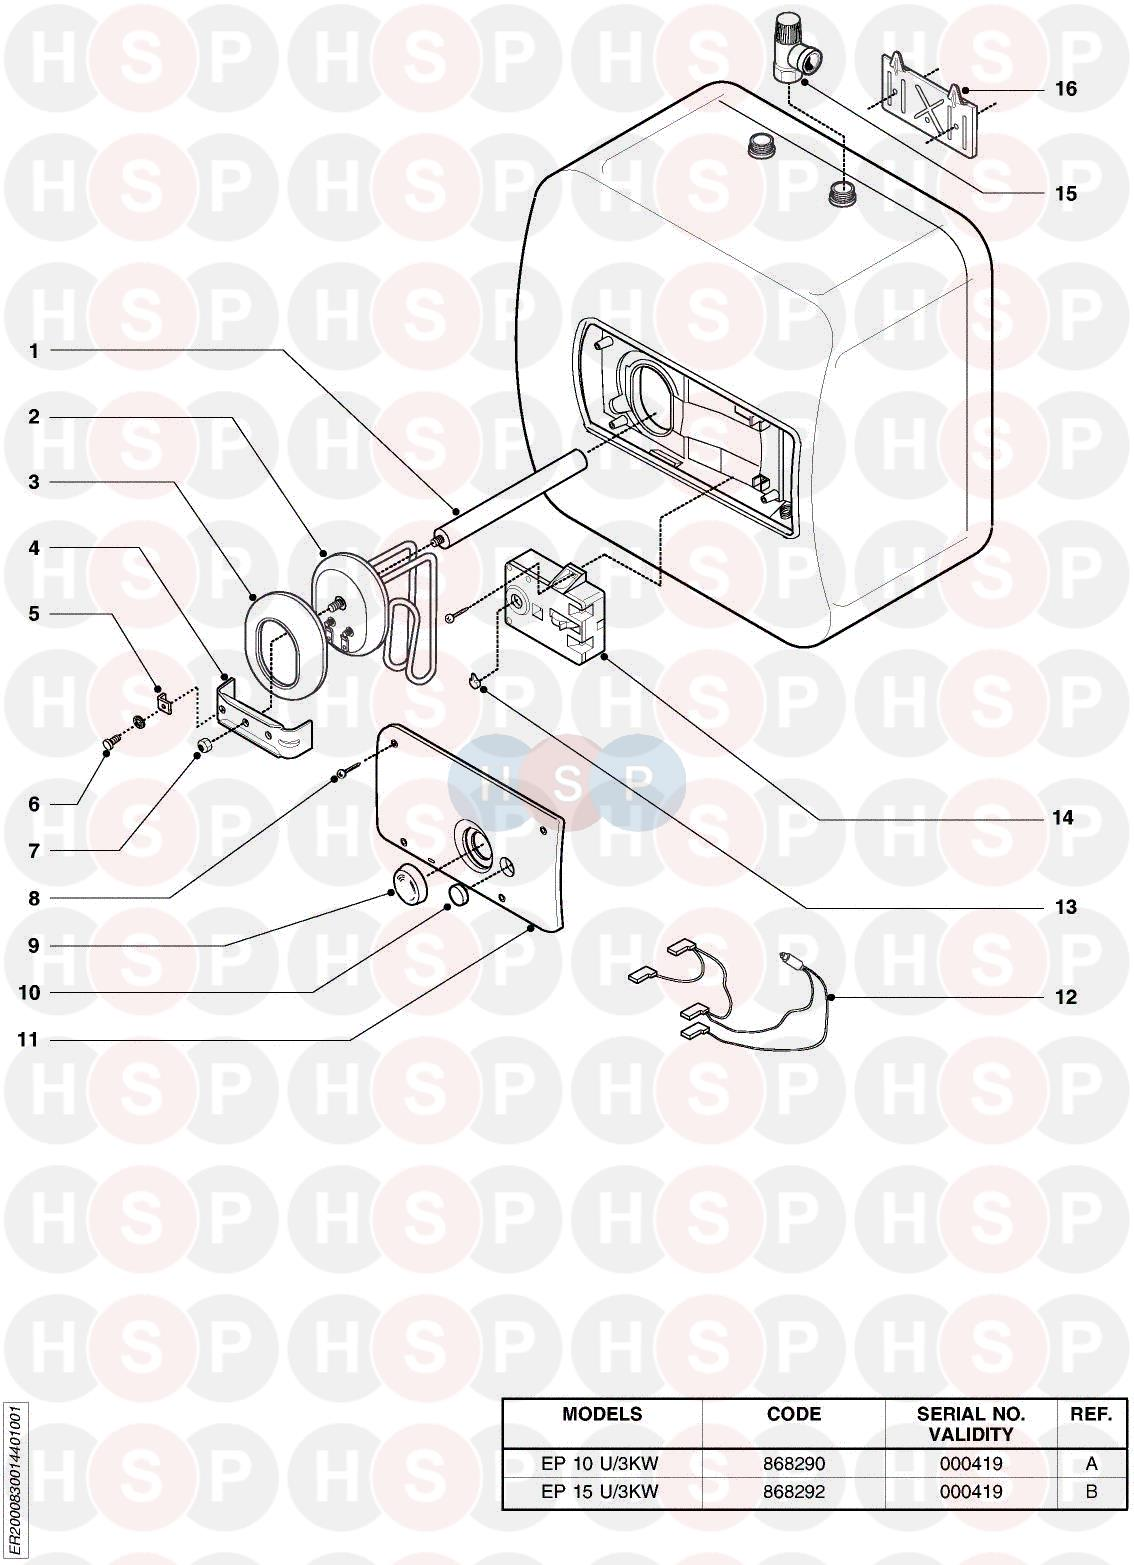 Ariston EP 10 U3KW EDITION 1 Appliance Diagram (EXPLODED